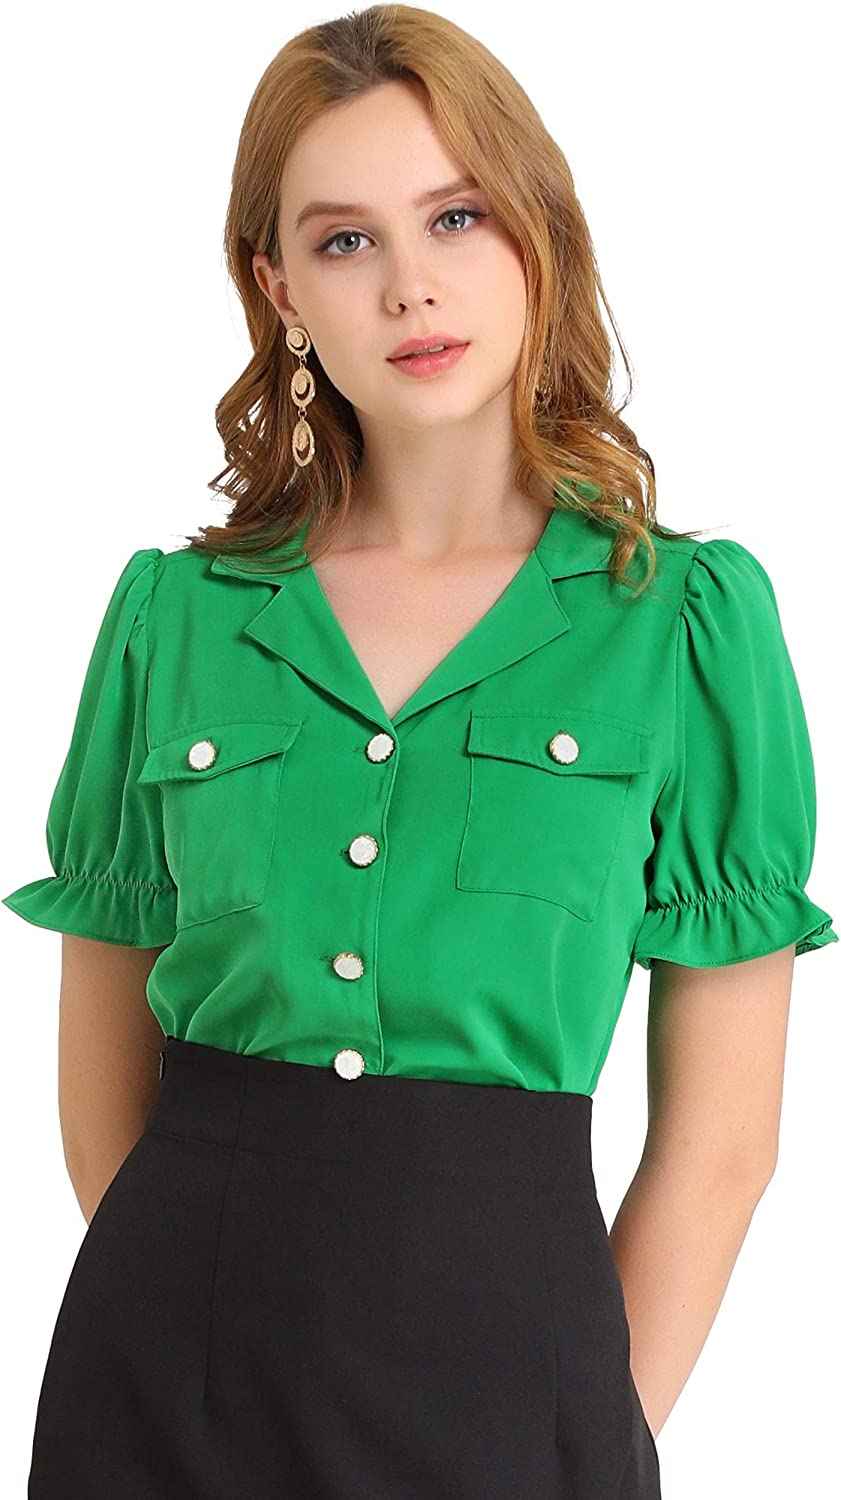 1950s Style Clothing & Fashion Allegra K Womens Casual Office Shirt Notched Lapel Button Front Puff Sleeve Vintage Blouse  AT vintagedancer.com